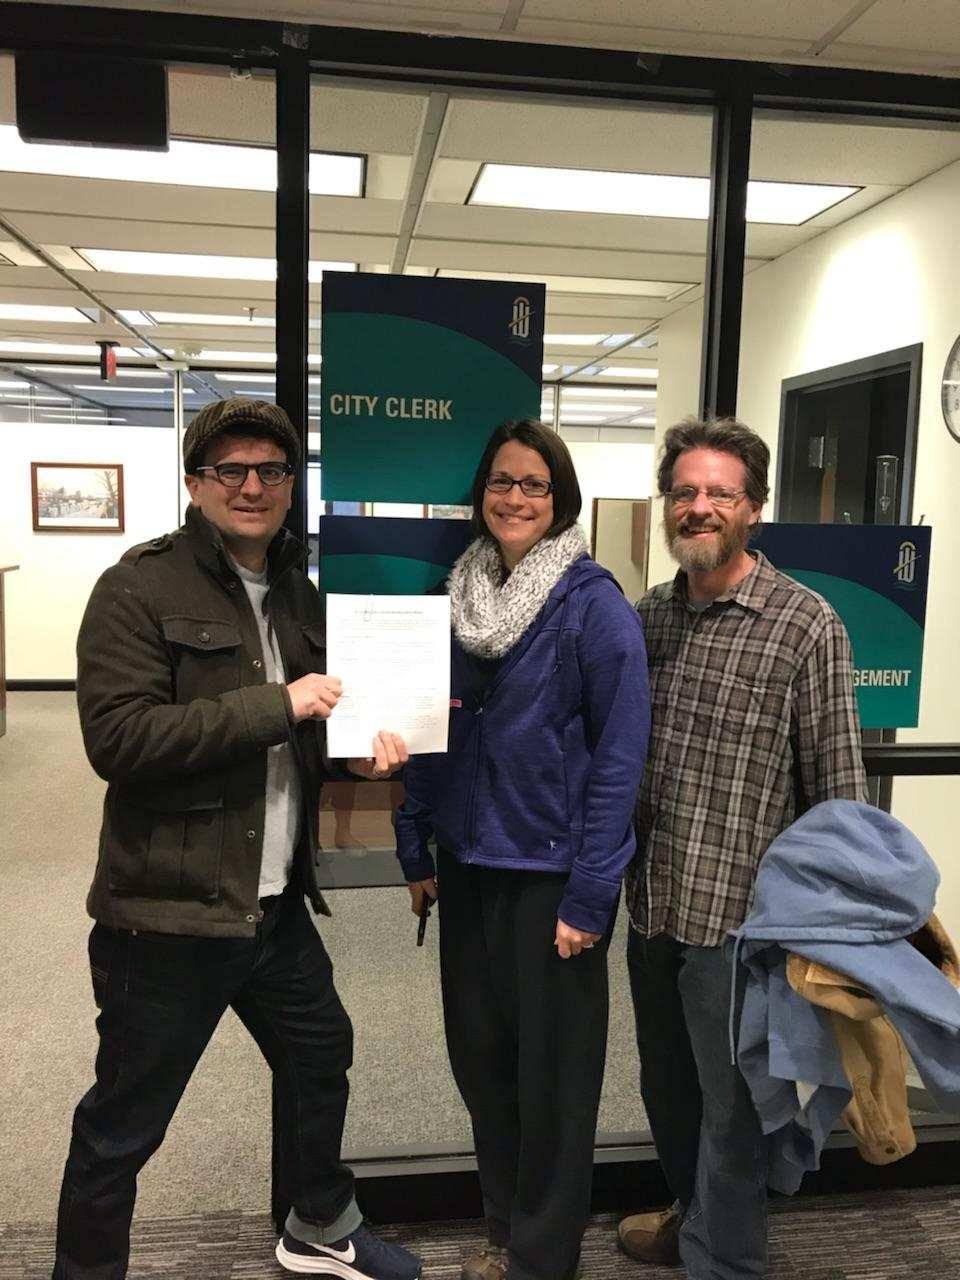 Our team, pictured here with the official paperwork, is ready to get started.